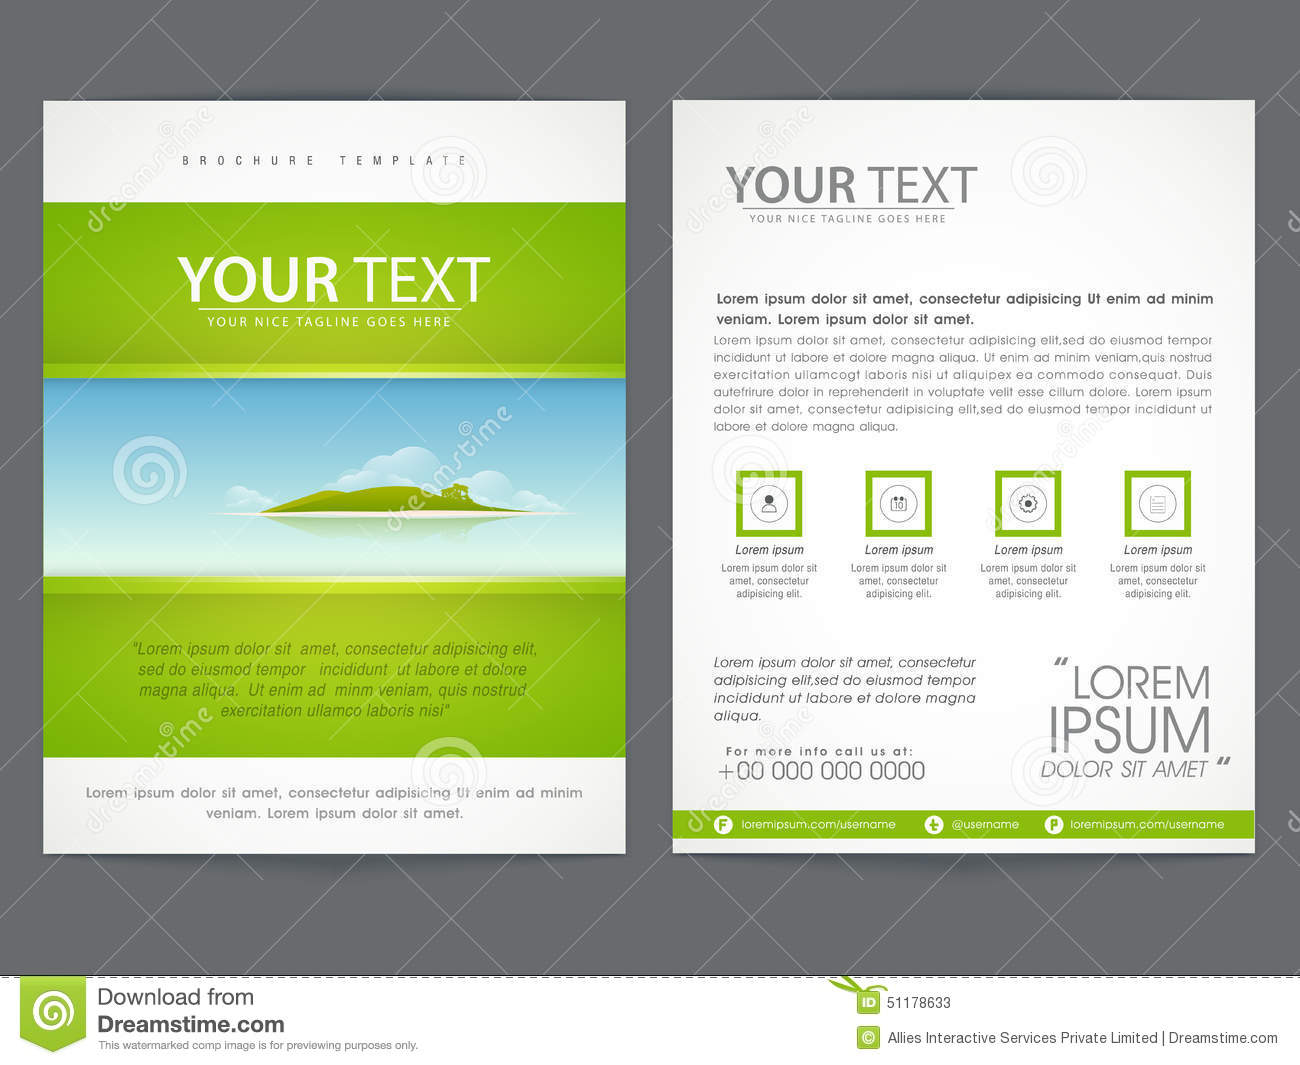 Delighted 10 Best Resumes Big 10 Label Template Square 1099 Form Template 13b Porting Templates Youthful 16 Team Bracket Template Bright1st Birthday Invite Templates Save Ecology Brochure, Template Or Flyer Design. Stock ..